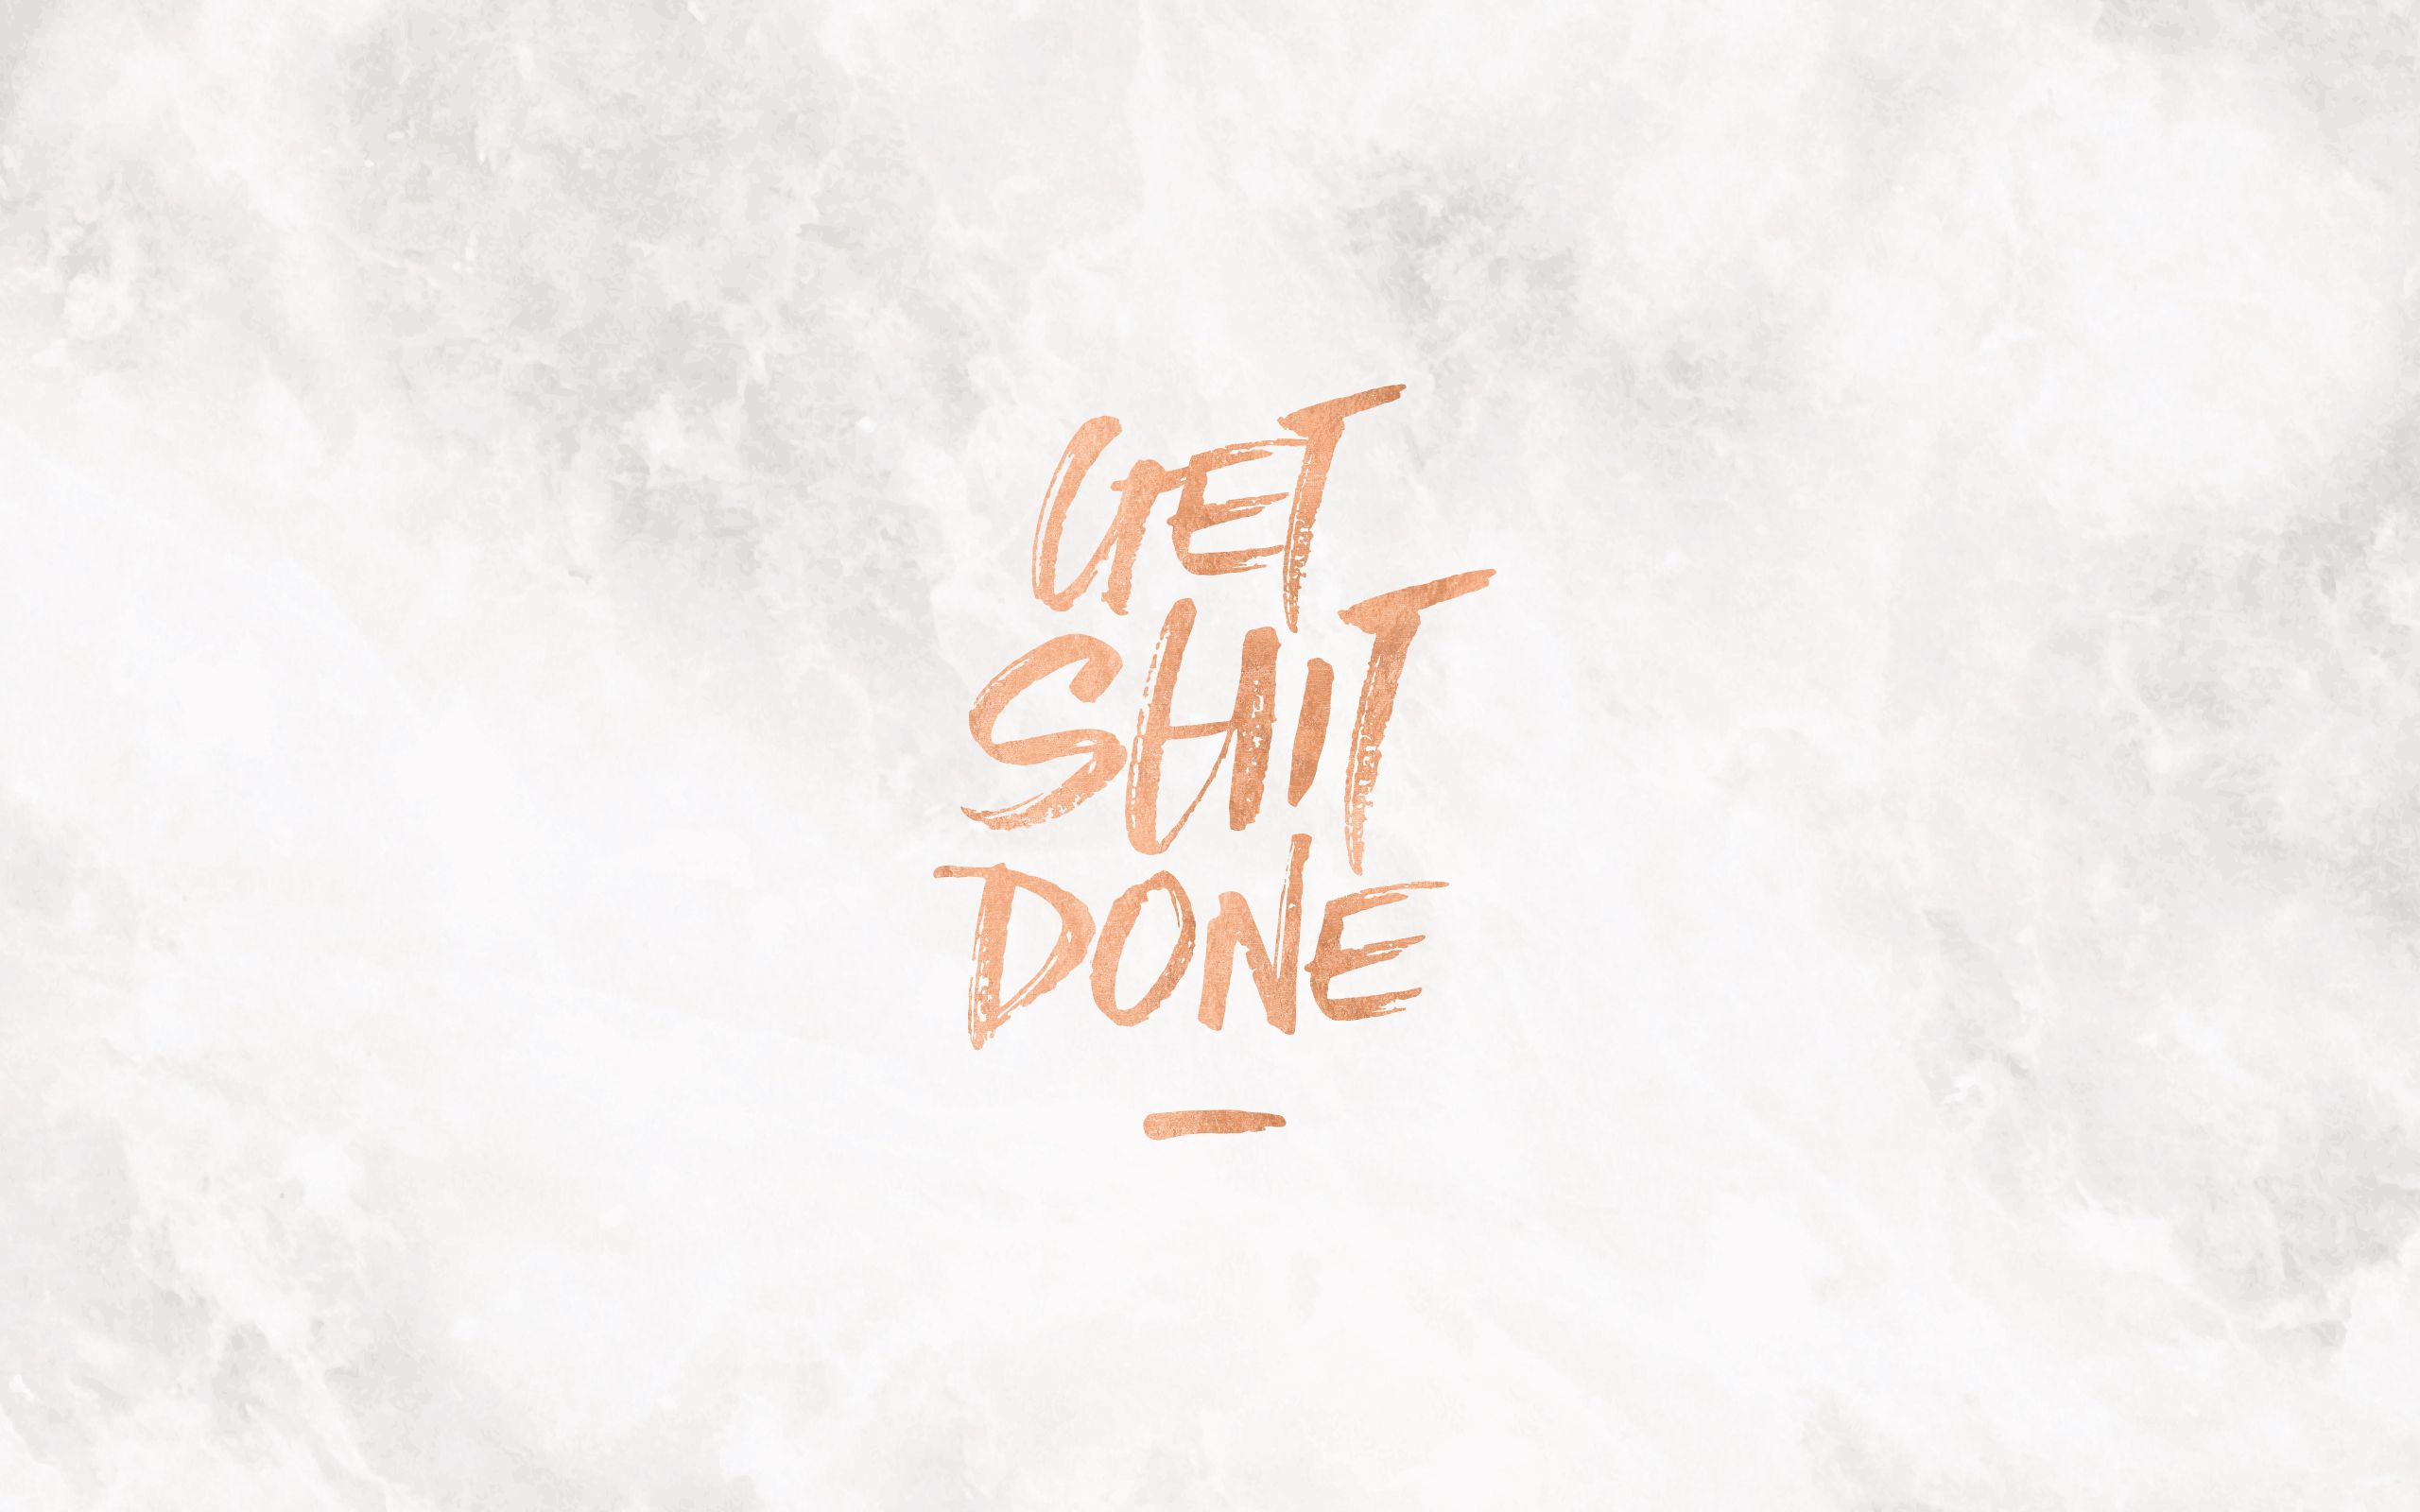 get shit done desktop calendar copper 1 2560a—1600 medwirt pinterest wallpaper desktop backgrounds and mac backgrounds